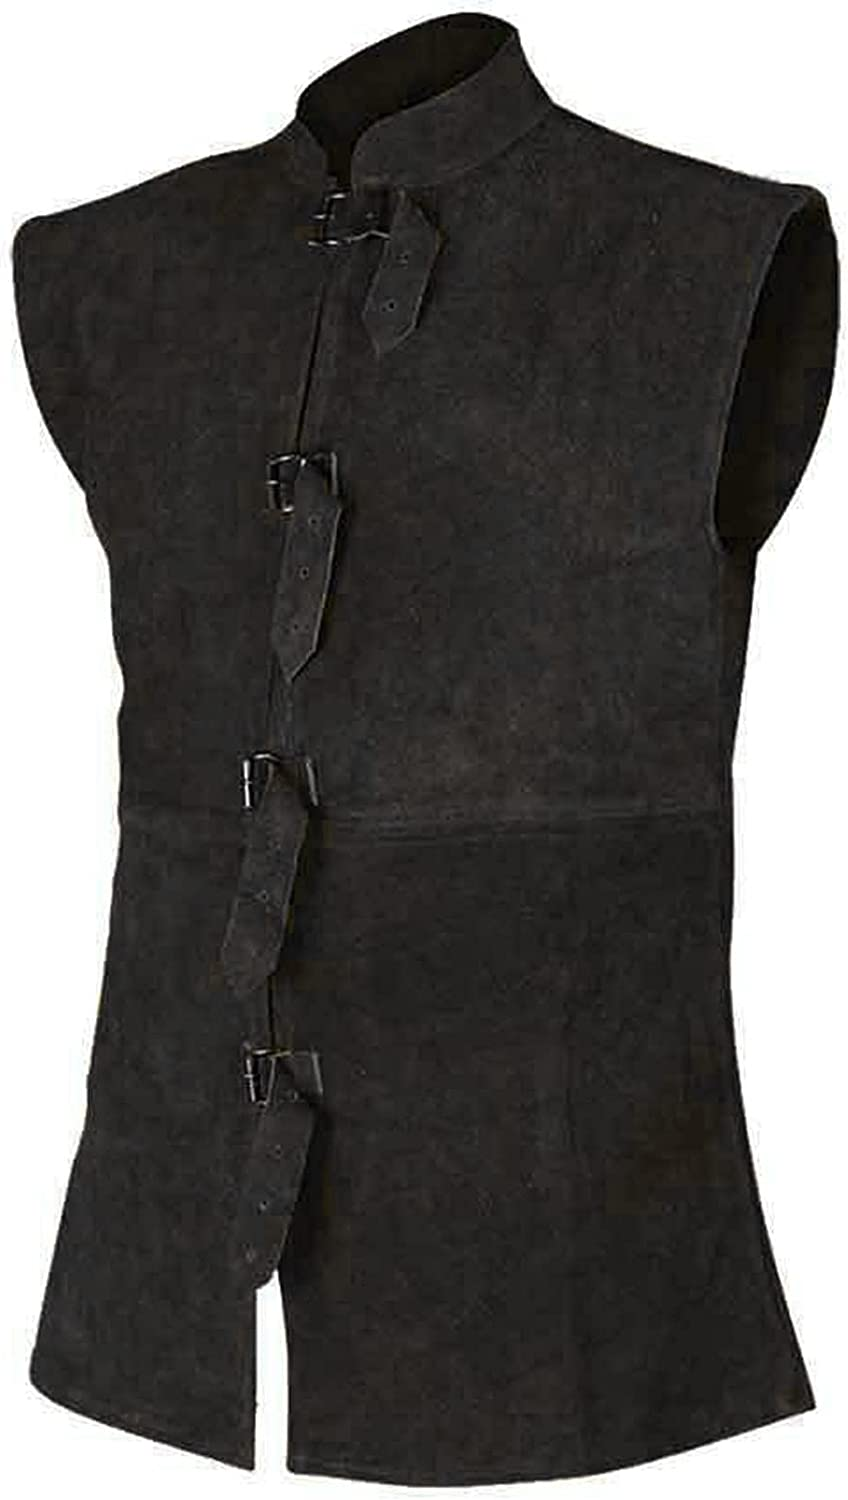 Vest Sales for sale for Men Button Strap Leather Retro Solid Collar Year-end gift Pocket